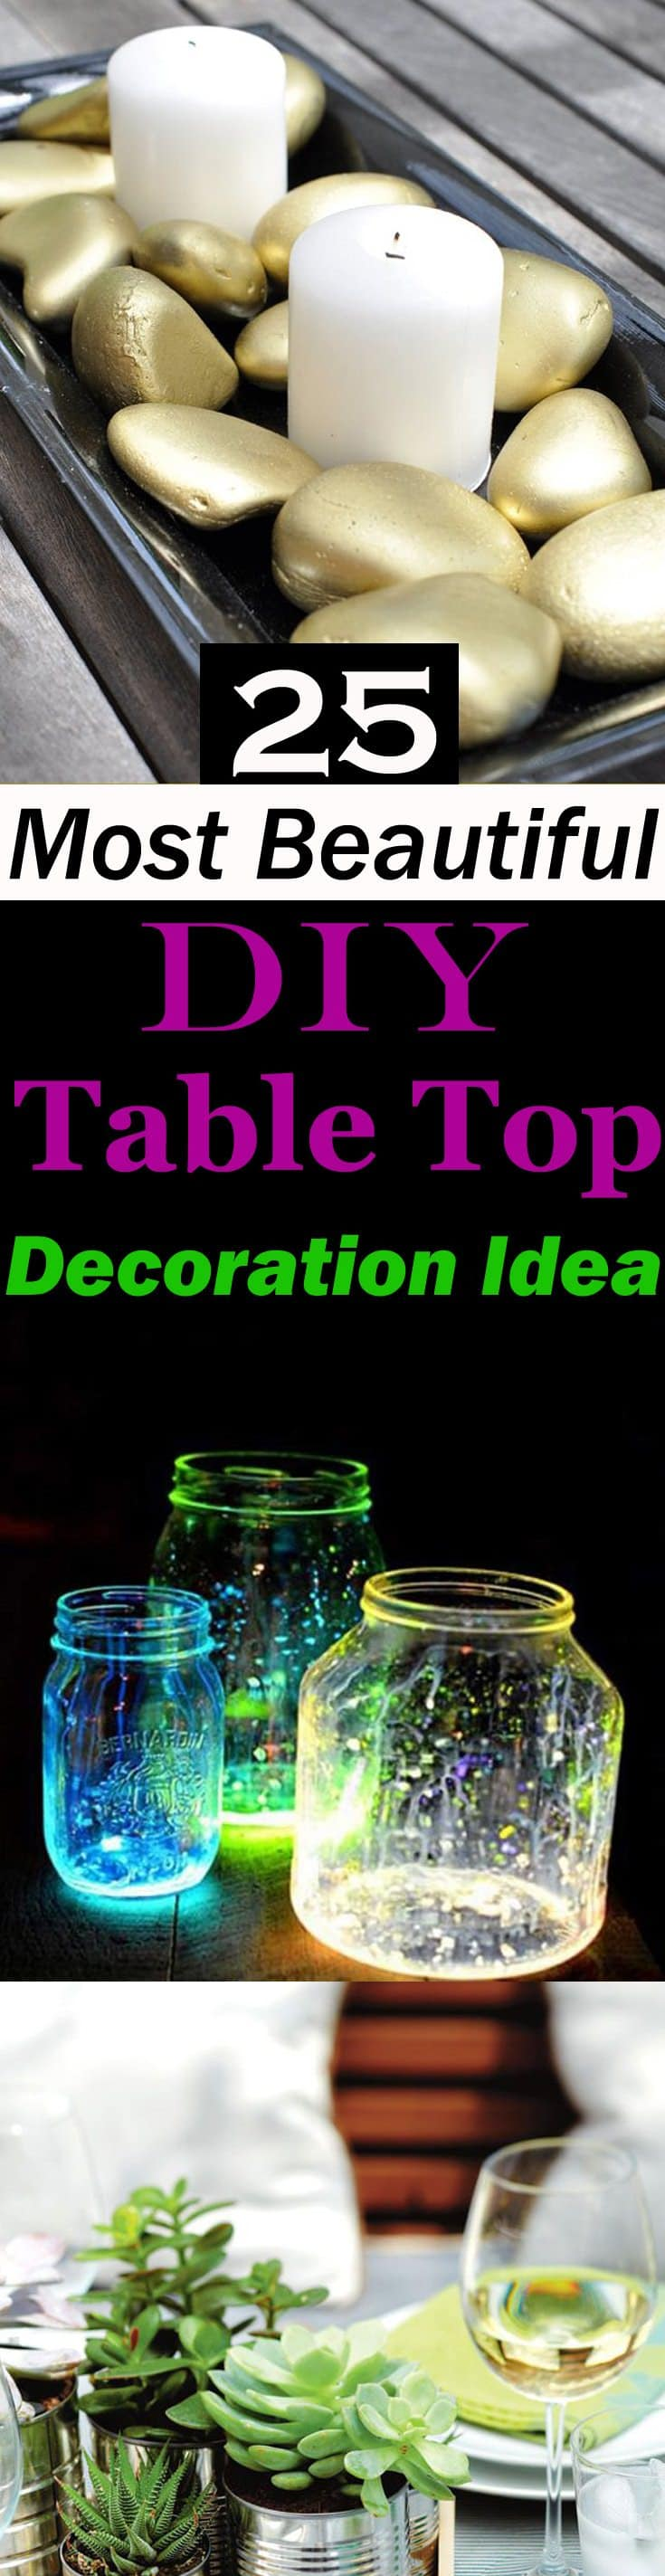 25 DIY tabletop decoration ideas that you'll love to follow. Easy and exciting, most of these centerpieces don't require many efforts!